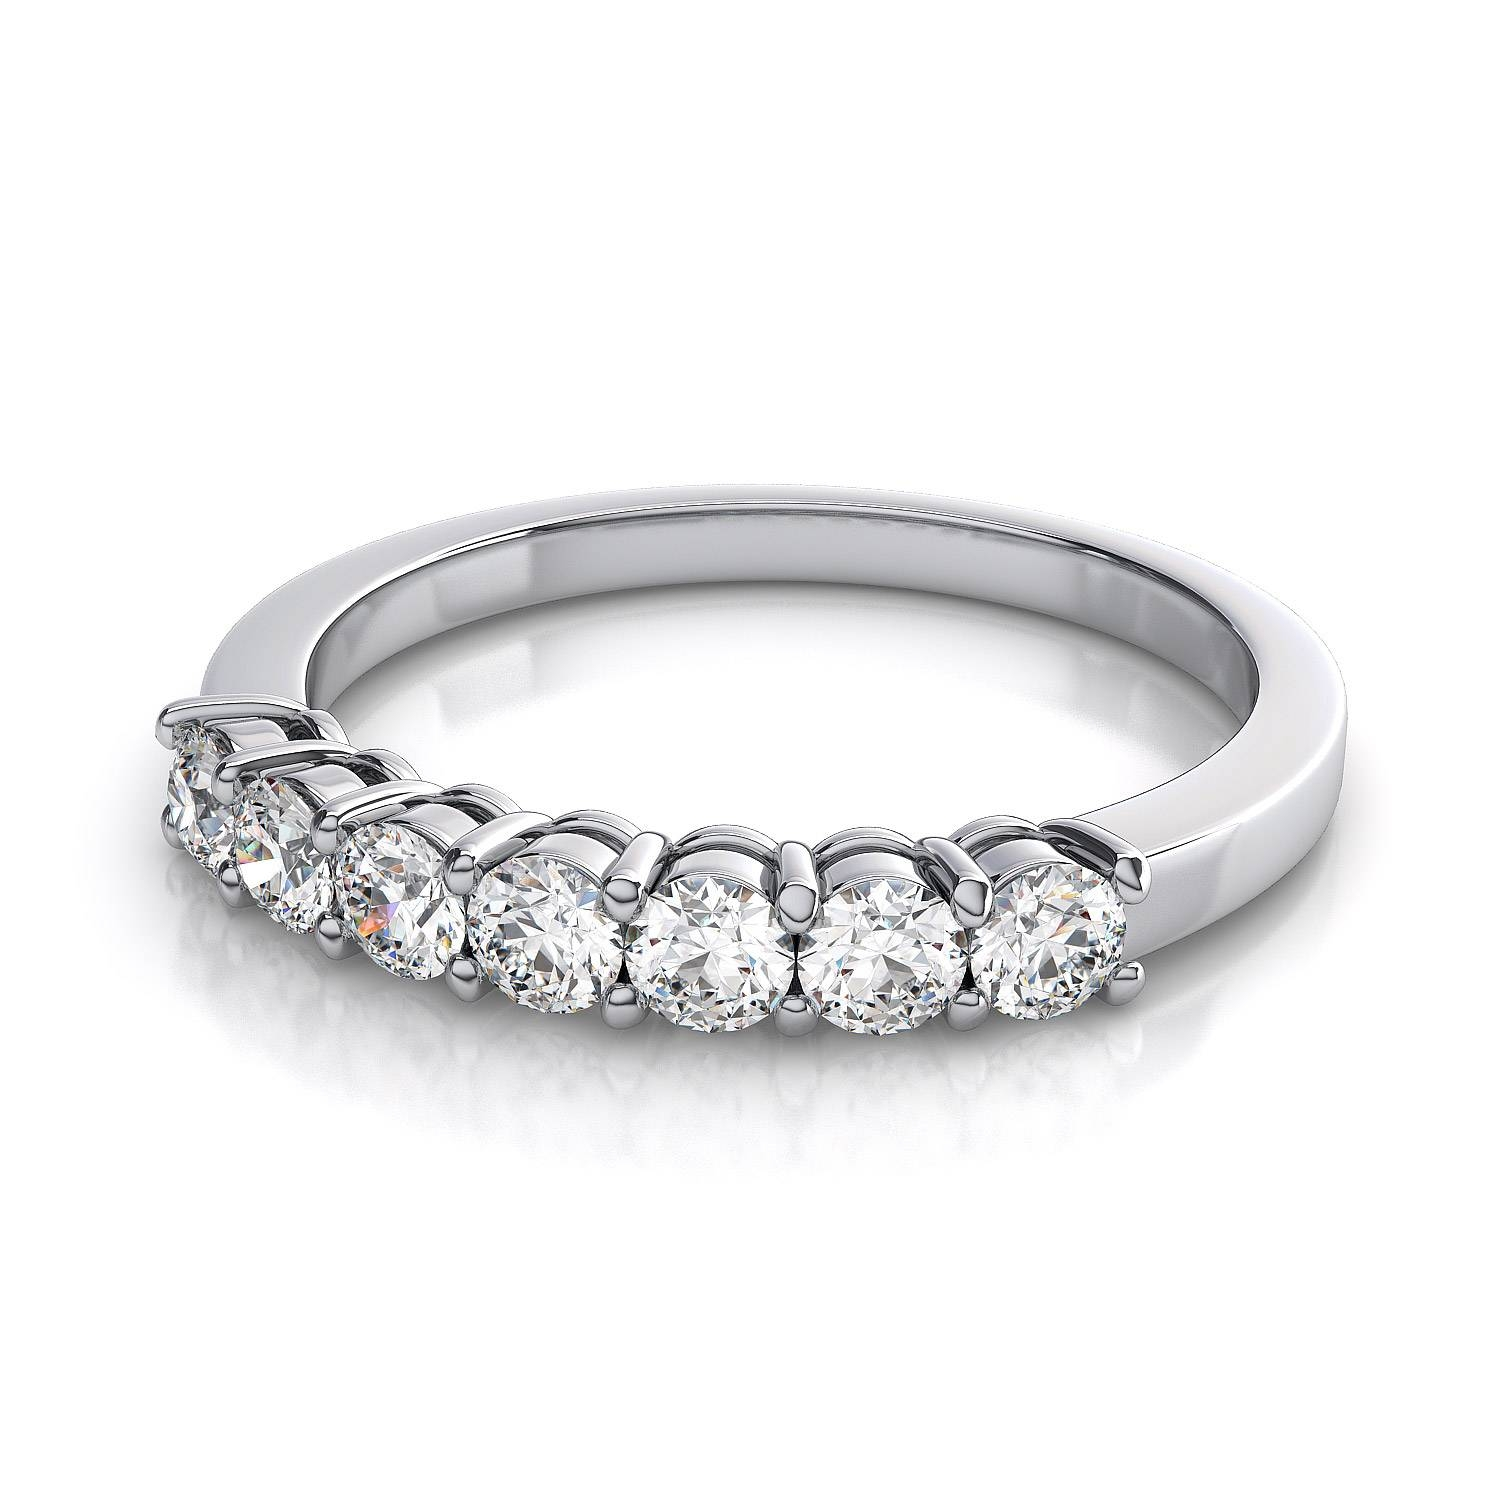 7 Stone Diamond Wedding Band In 18K White Gold Vs G H Regarding 7 Diamond Engagement Rings (View 2 of 15)